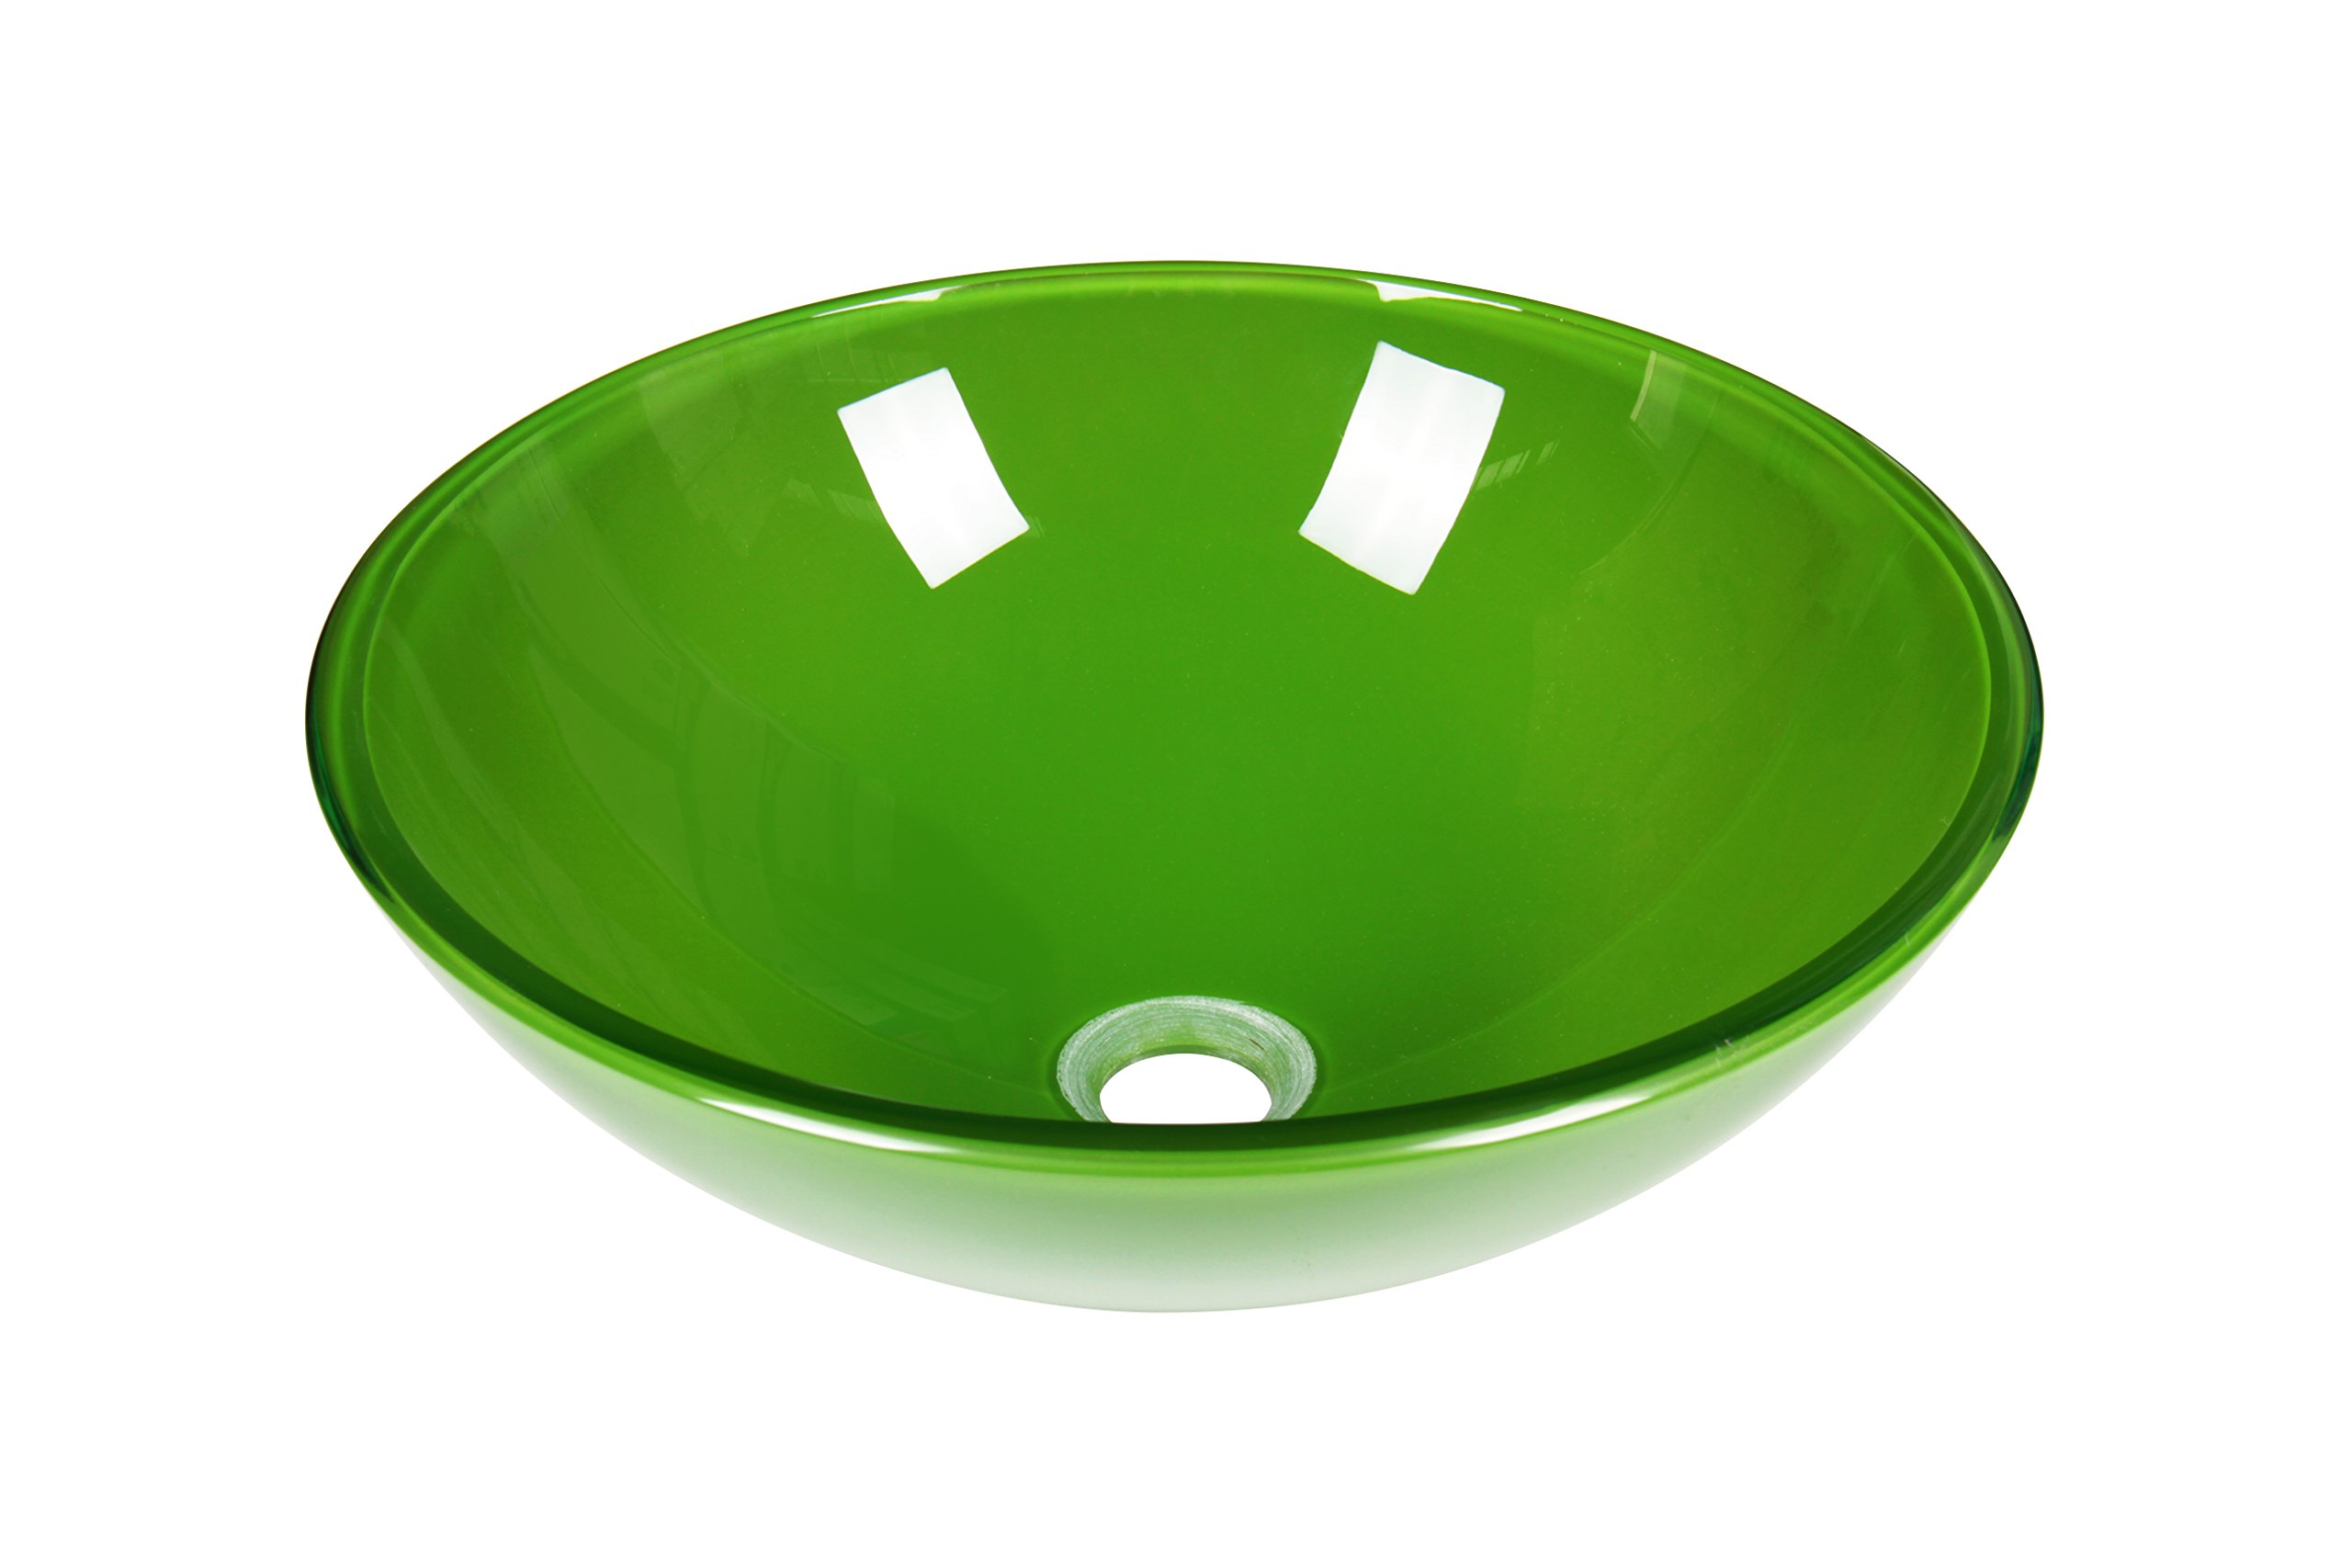 Jano Clear Green Tempered Glass Circular Vessel Bathroom Sink with Pop up Drain